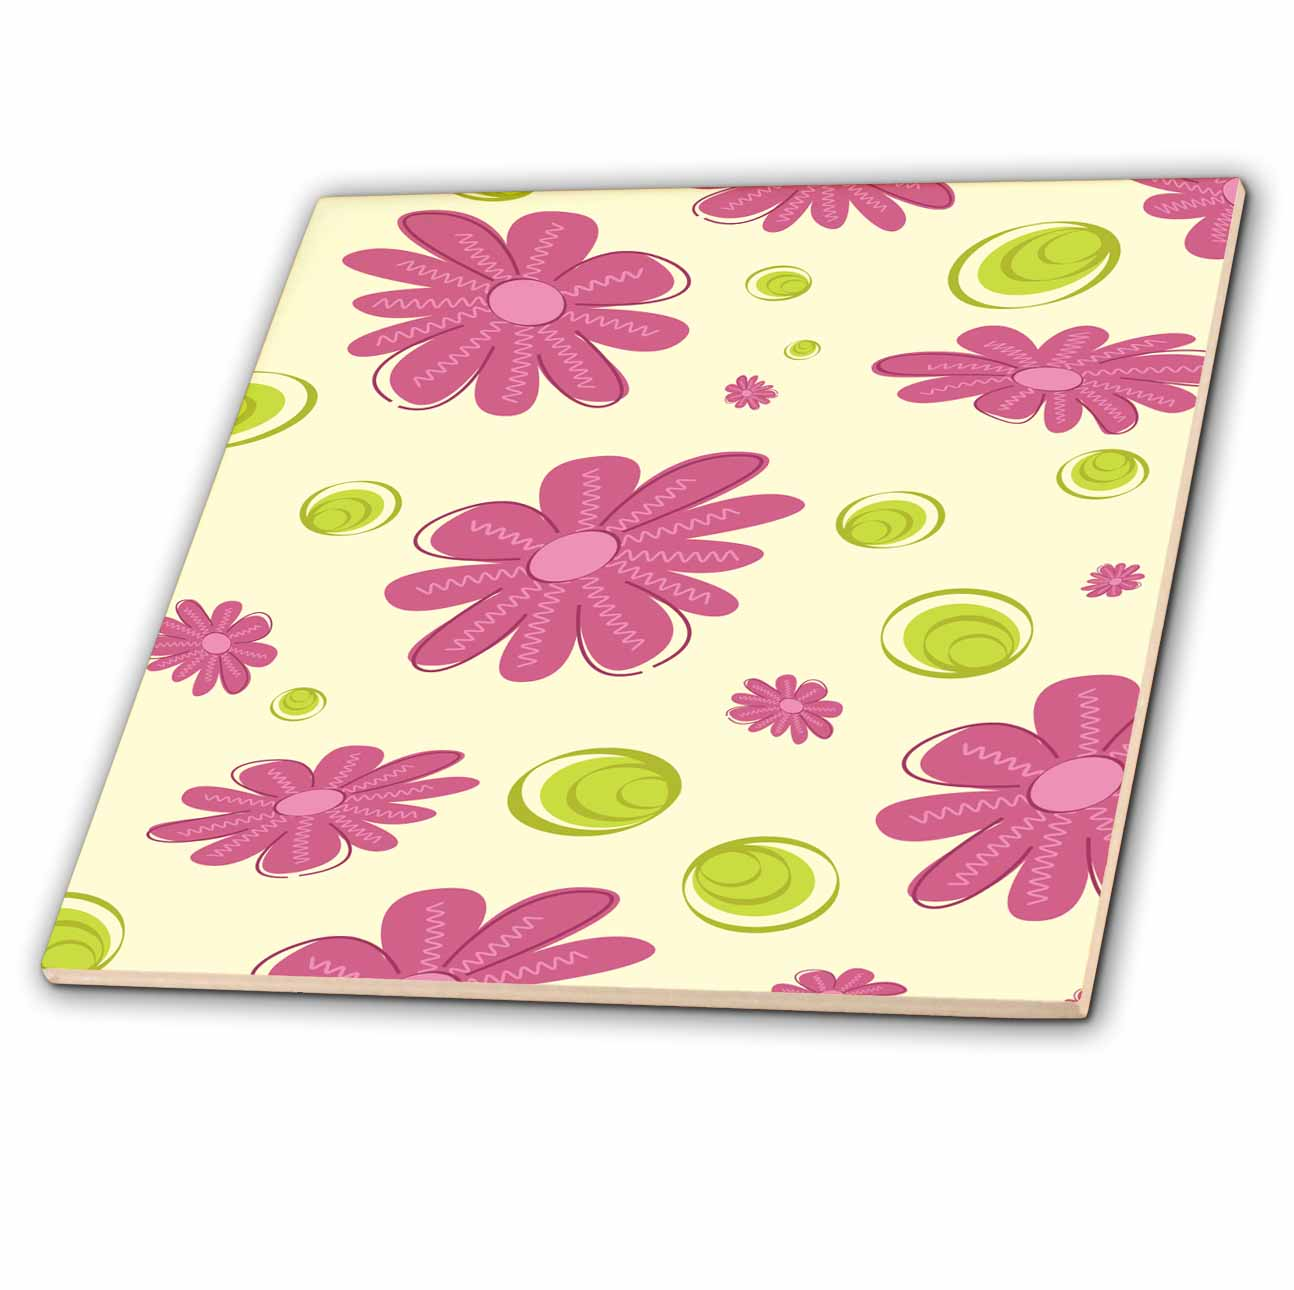 3dRose Cute Purple Daisy Pattern With Green Accents - Ceramic Tile, 4-inch